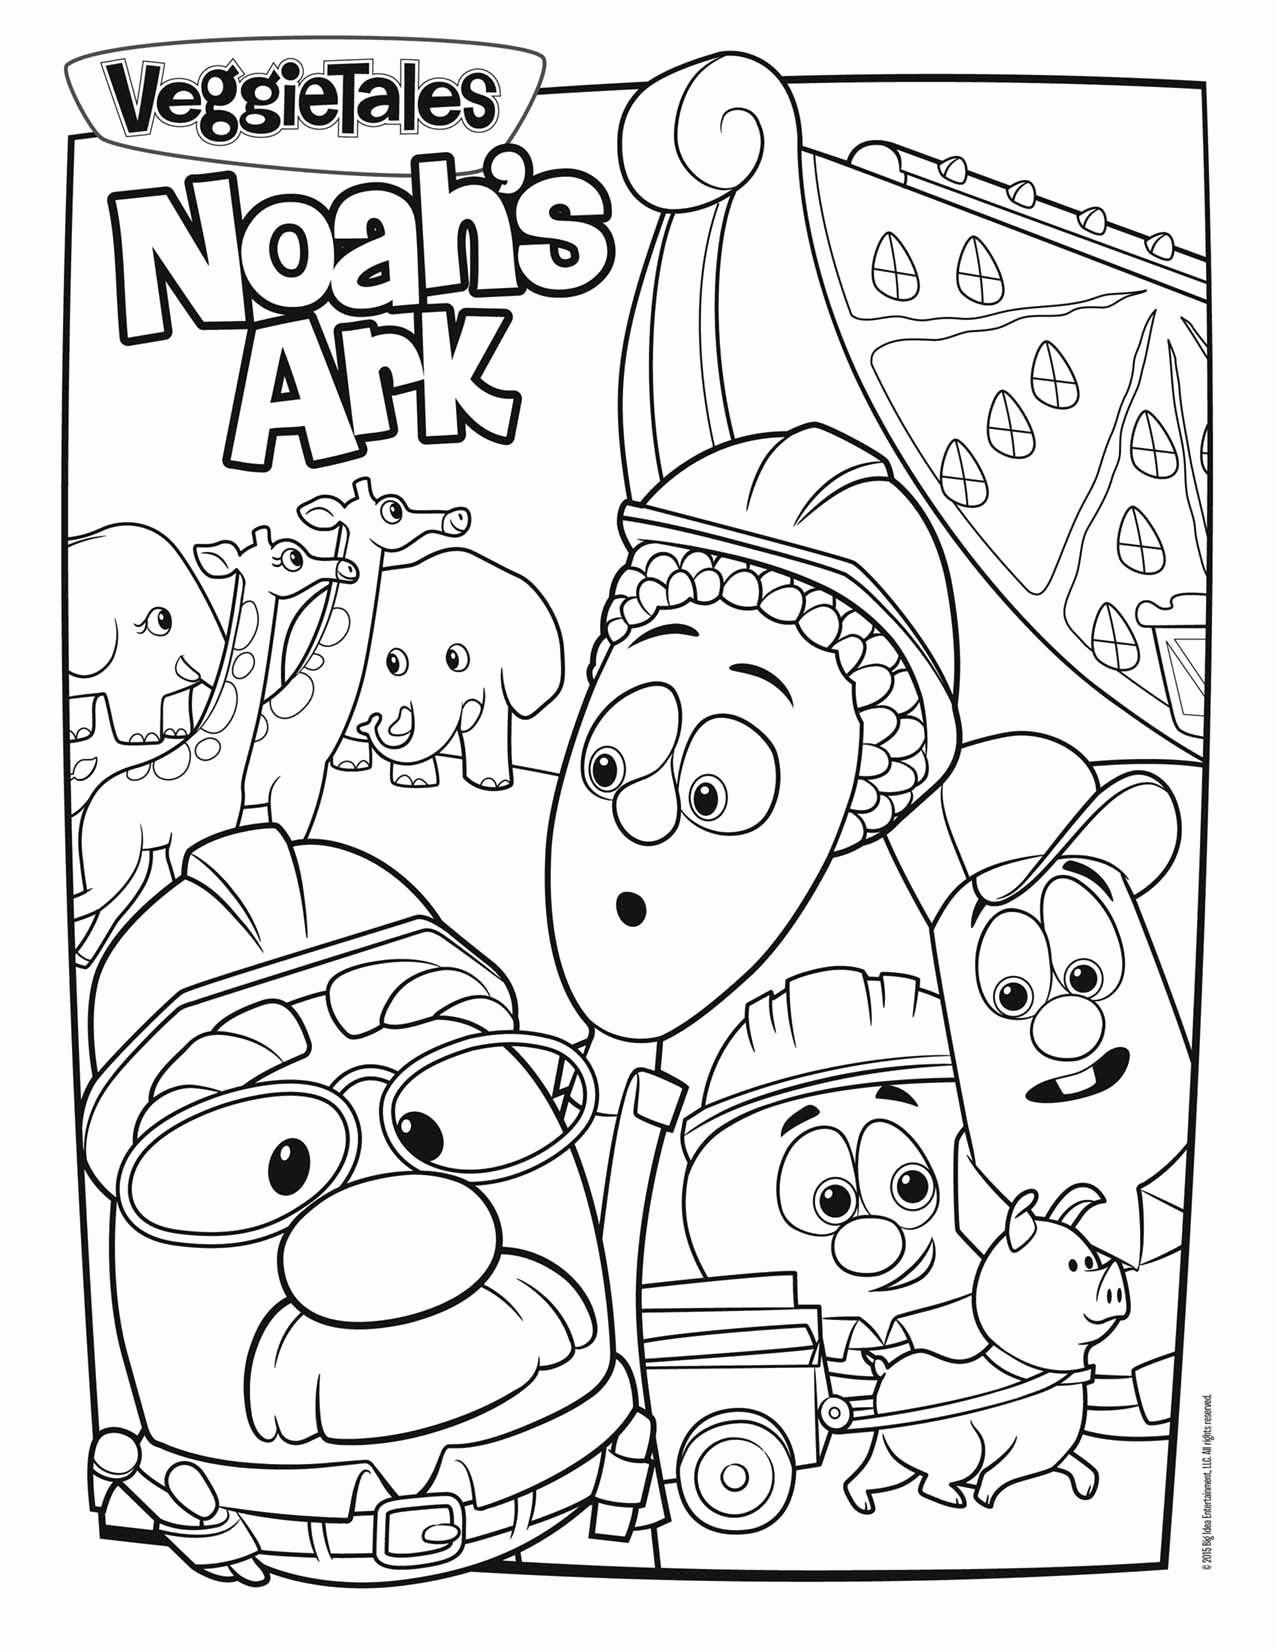 Noahs Ark Coloring Page Luxury Noah S Ark Coloring Page Noah S Ark Coloring Pages Captain America Coloring Pages Toddler Coloring Book